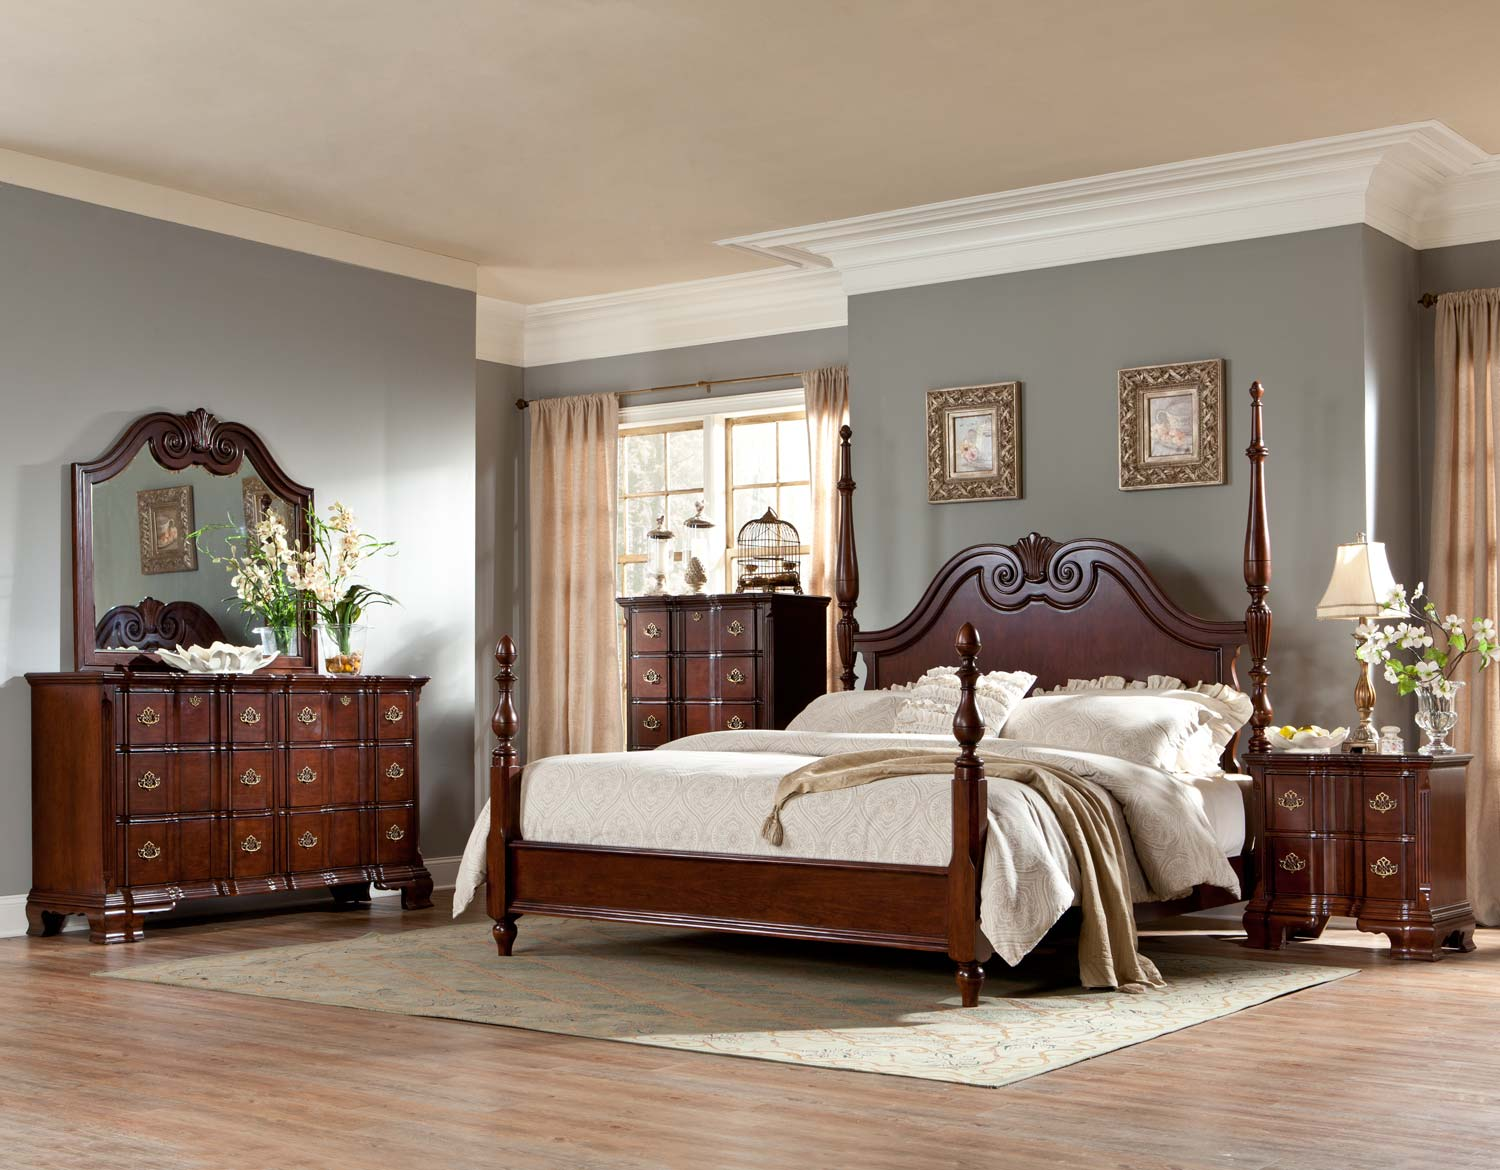 Homelegance Guilford Poster Bedroom Set - Brown Cherry B2155-1SP-BED ...